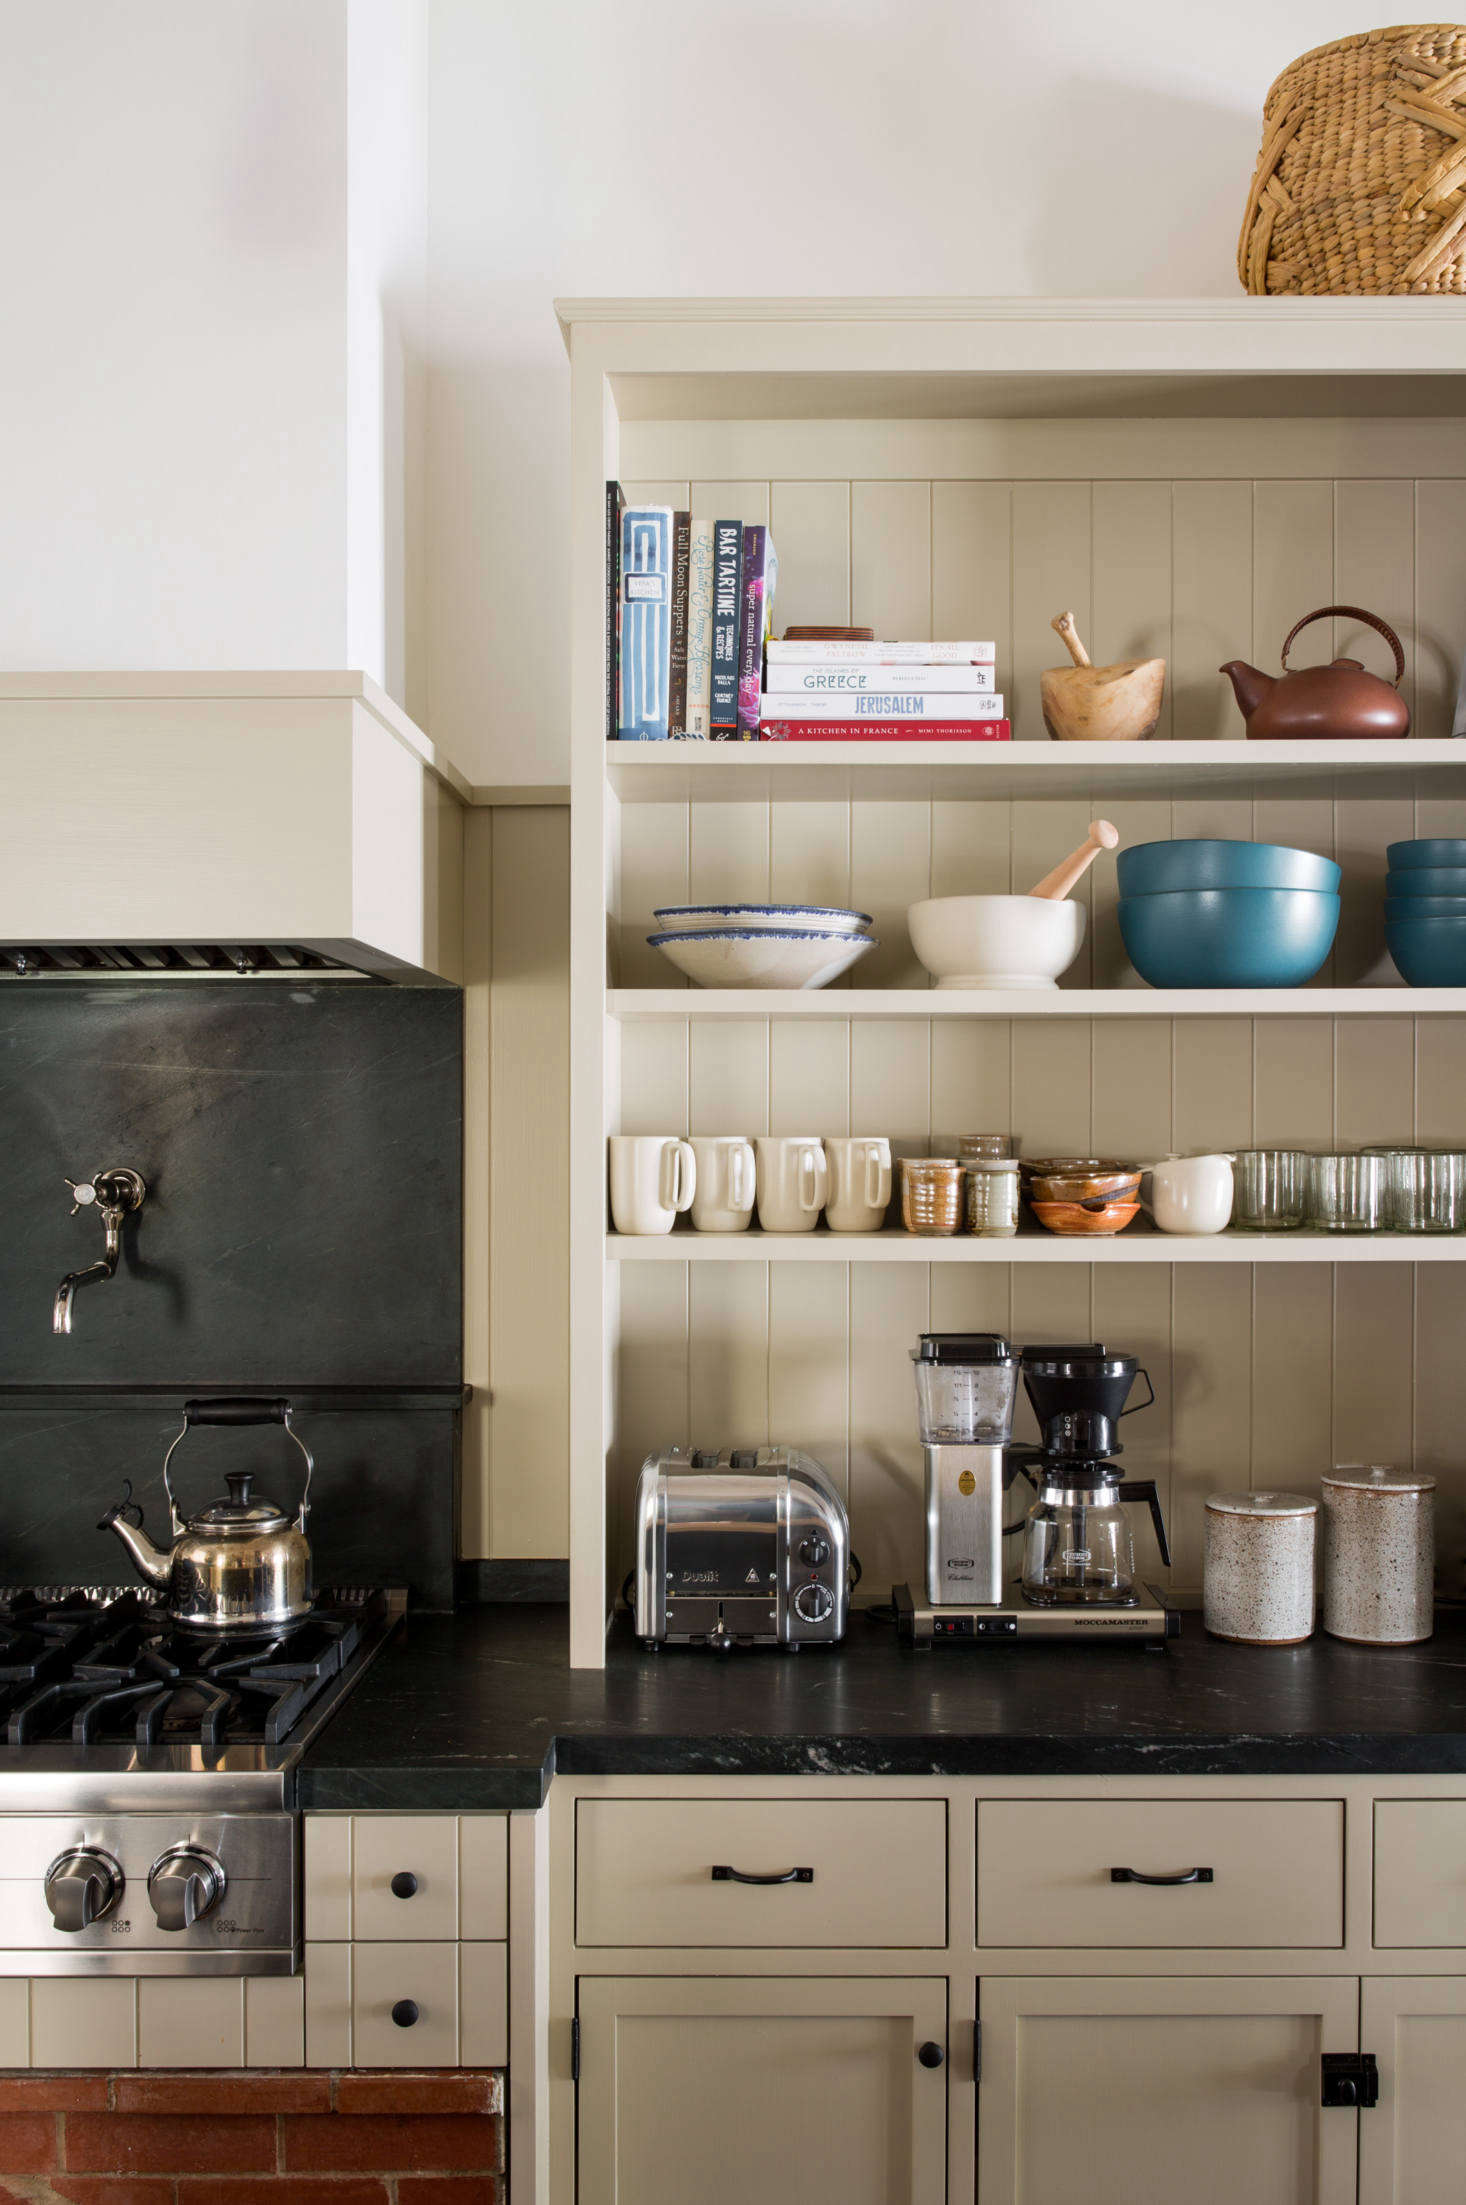 The custom cabinets have V-groove fronts that match the wainscoting and the original cladding elsewhere in the house. (For more, consult The Ultimate Wood Paneling Guide.) Above the stove is a pot filler by Waterworks and a Le Creusetkettle. The toaster is Dualit&#8